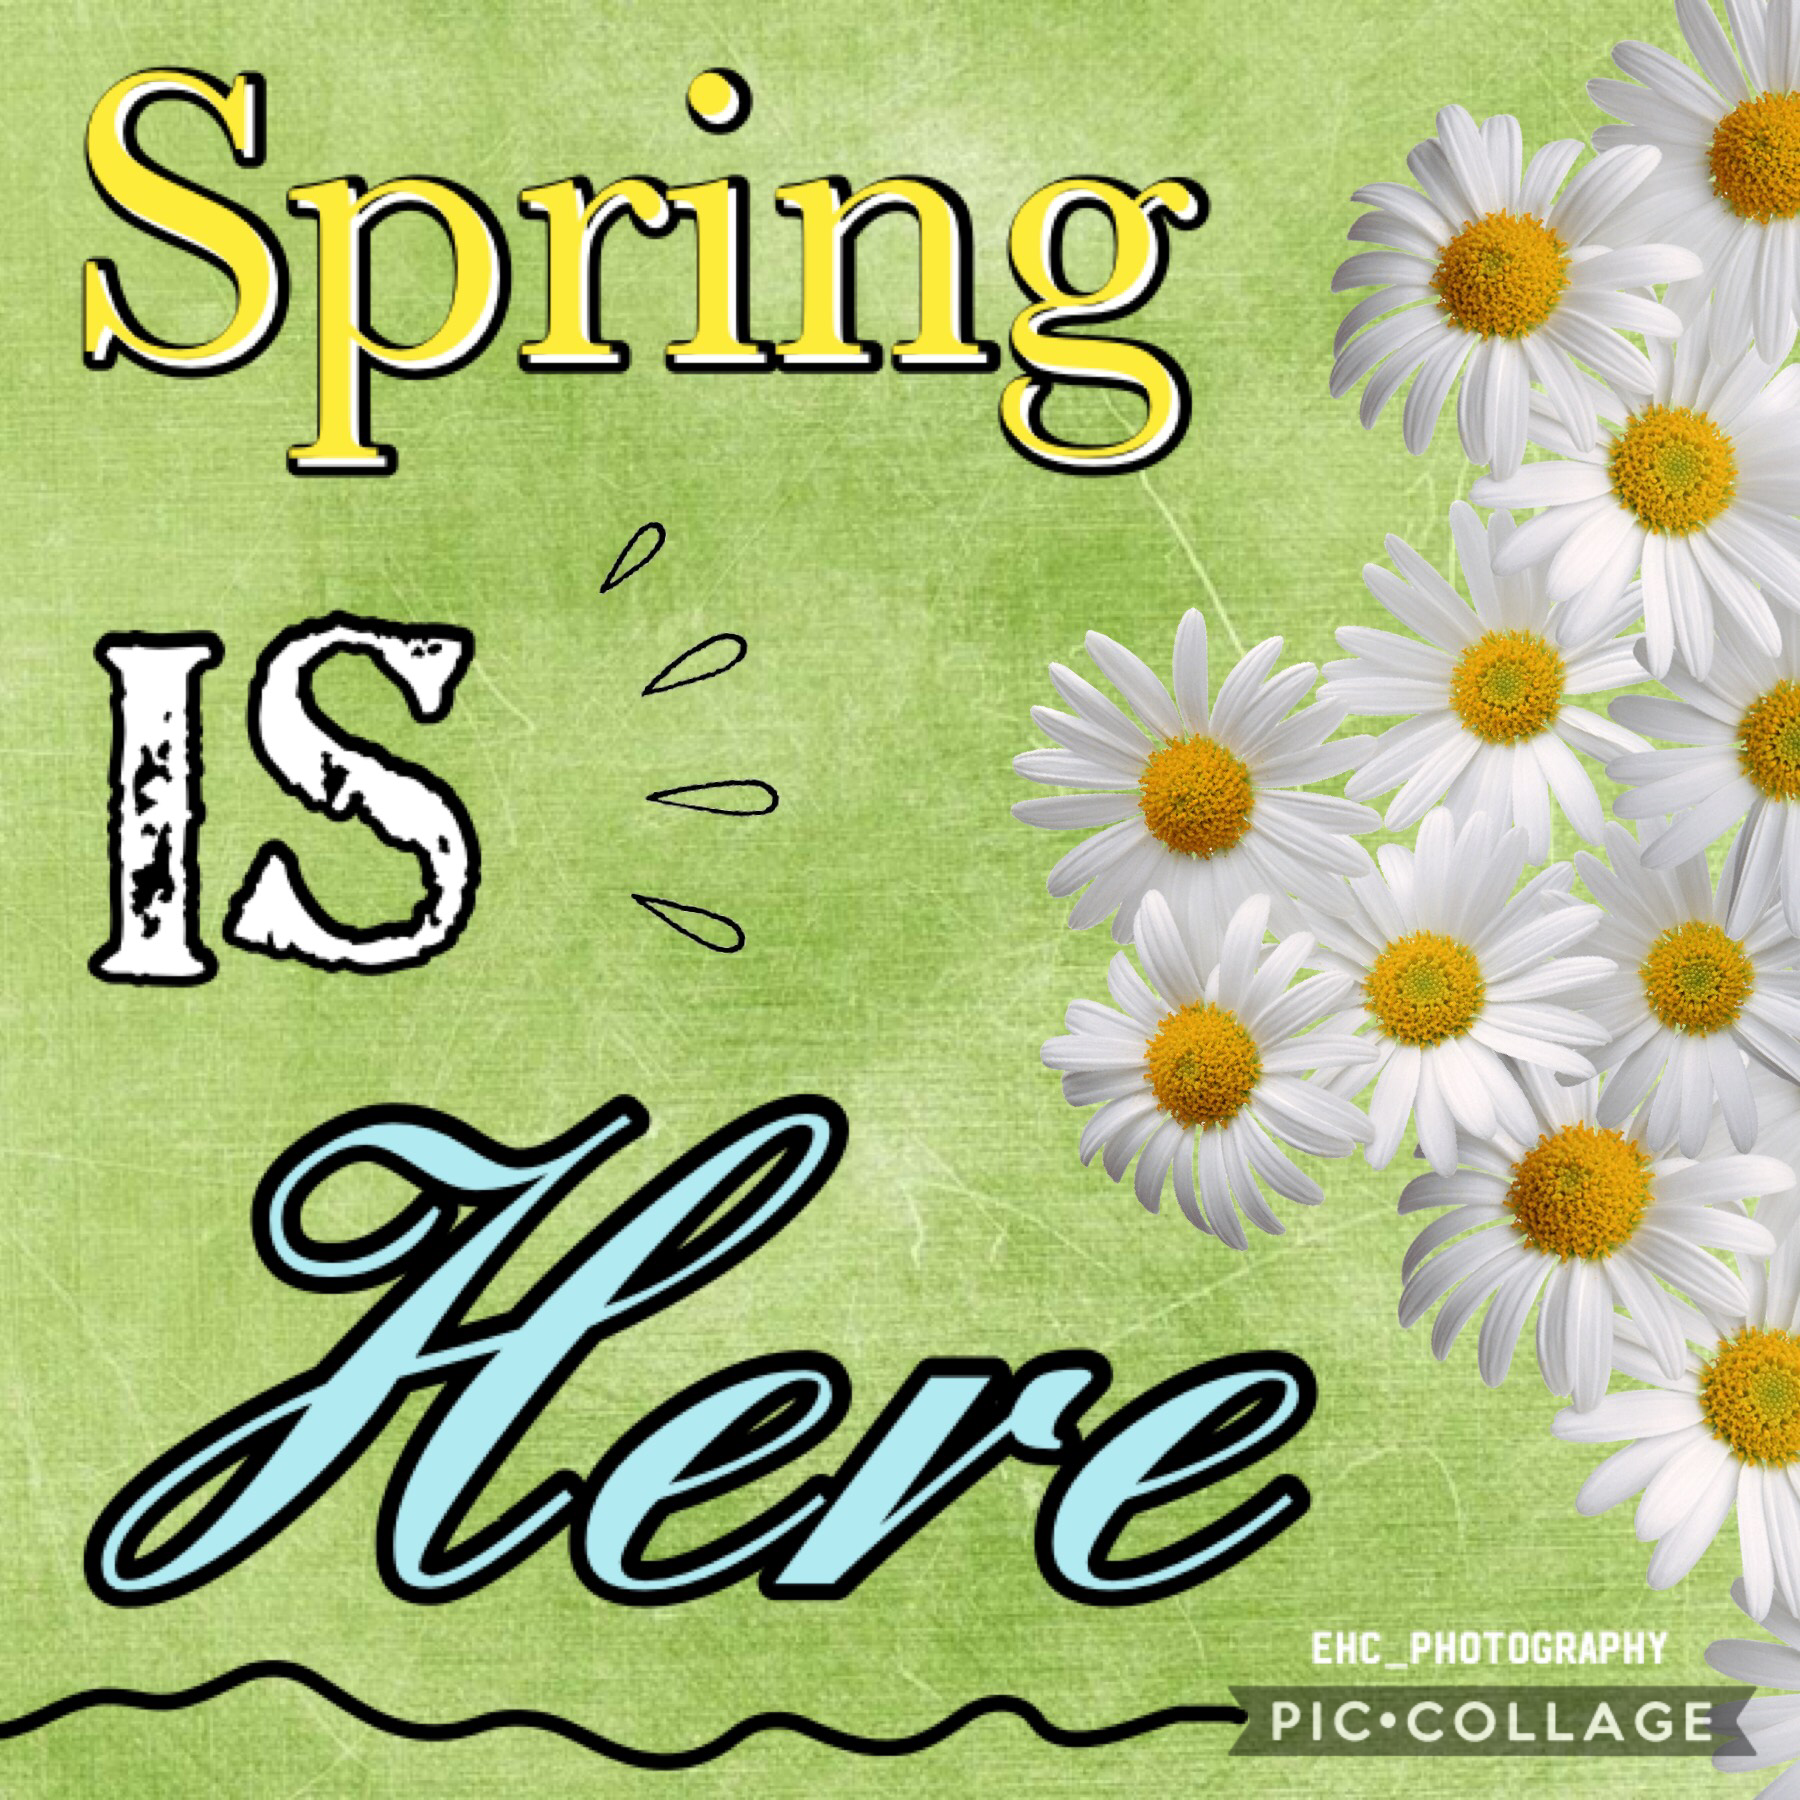 Happy Spring Equinox! 😊 🌧 🌼 It's a bit warmer today so hopefully it'll stay  🌱 this way for a while. 👌🏻 It's also International Day of Happiness, 🥰 National Proposal Day, 💍 and Snowman Burning Day. 😂 🔥 ⛄️ I've procrastinated so much lately I need help. 😶